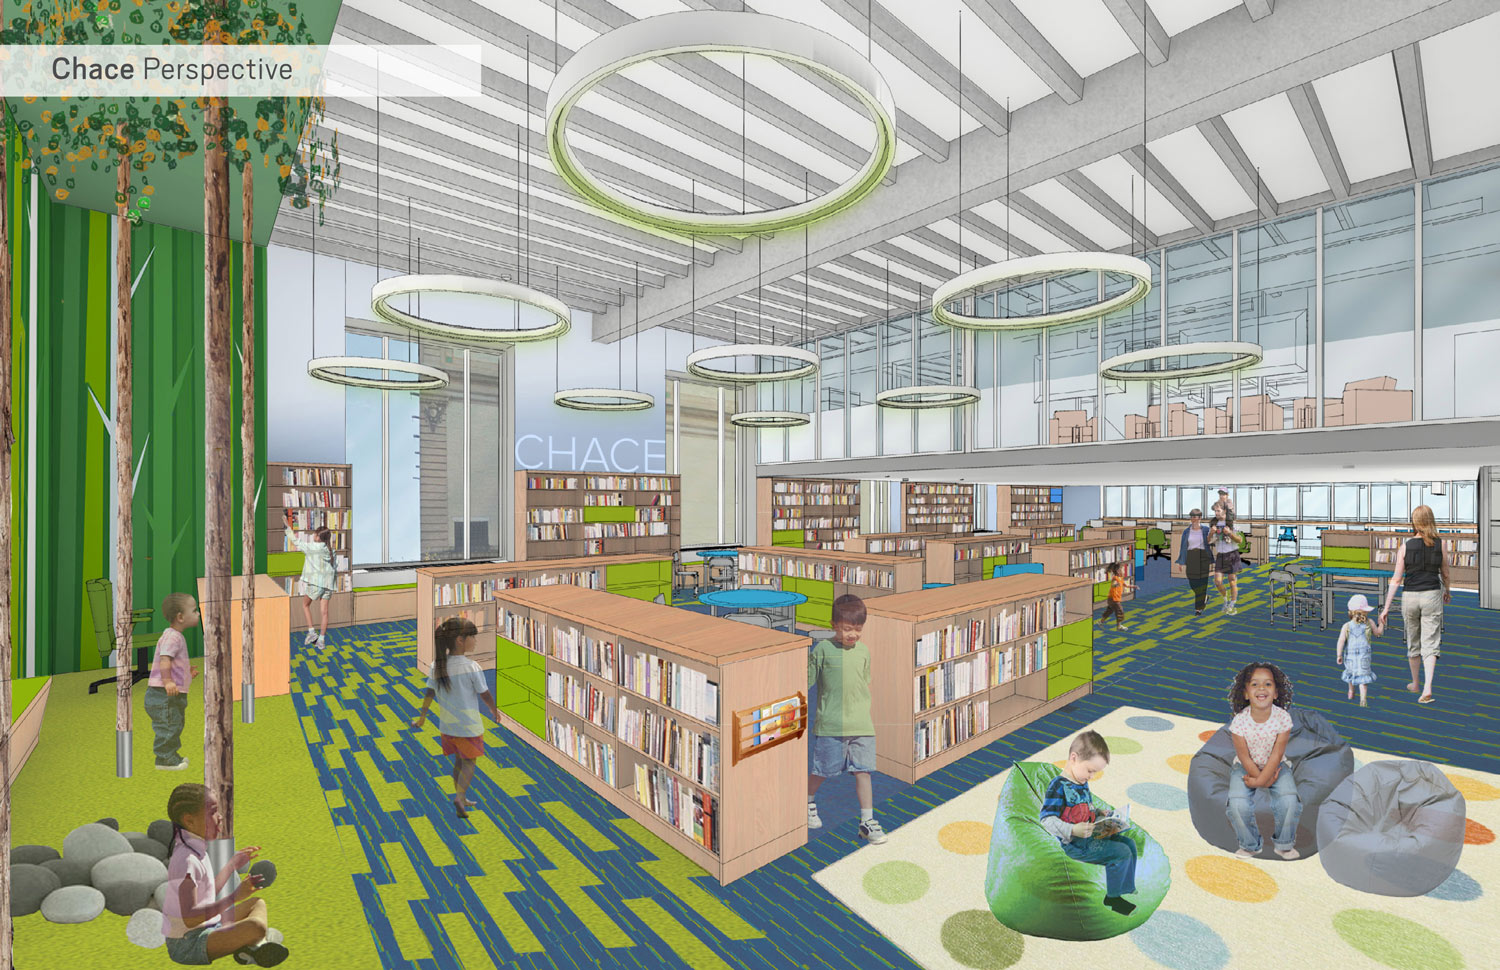 Level One - Chace Children's Library Perspective